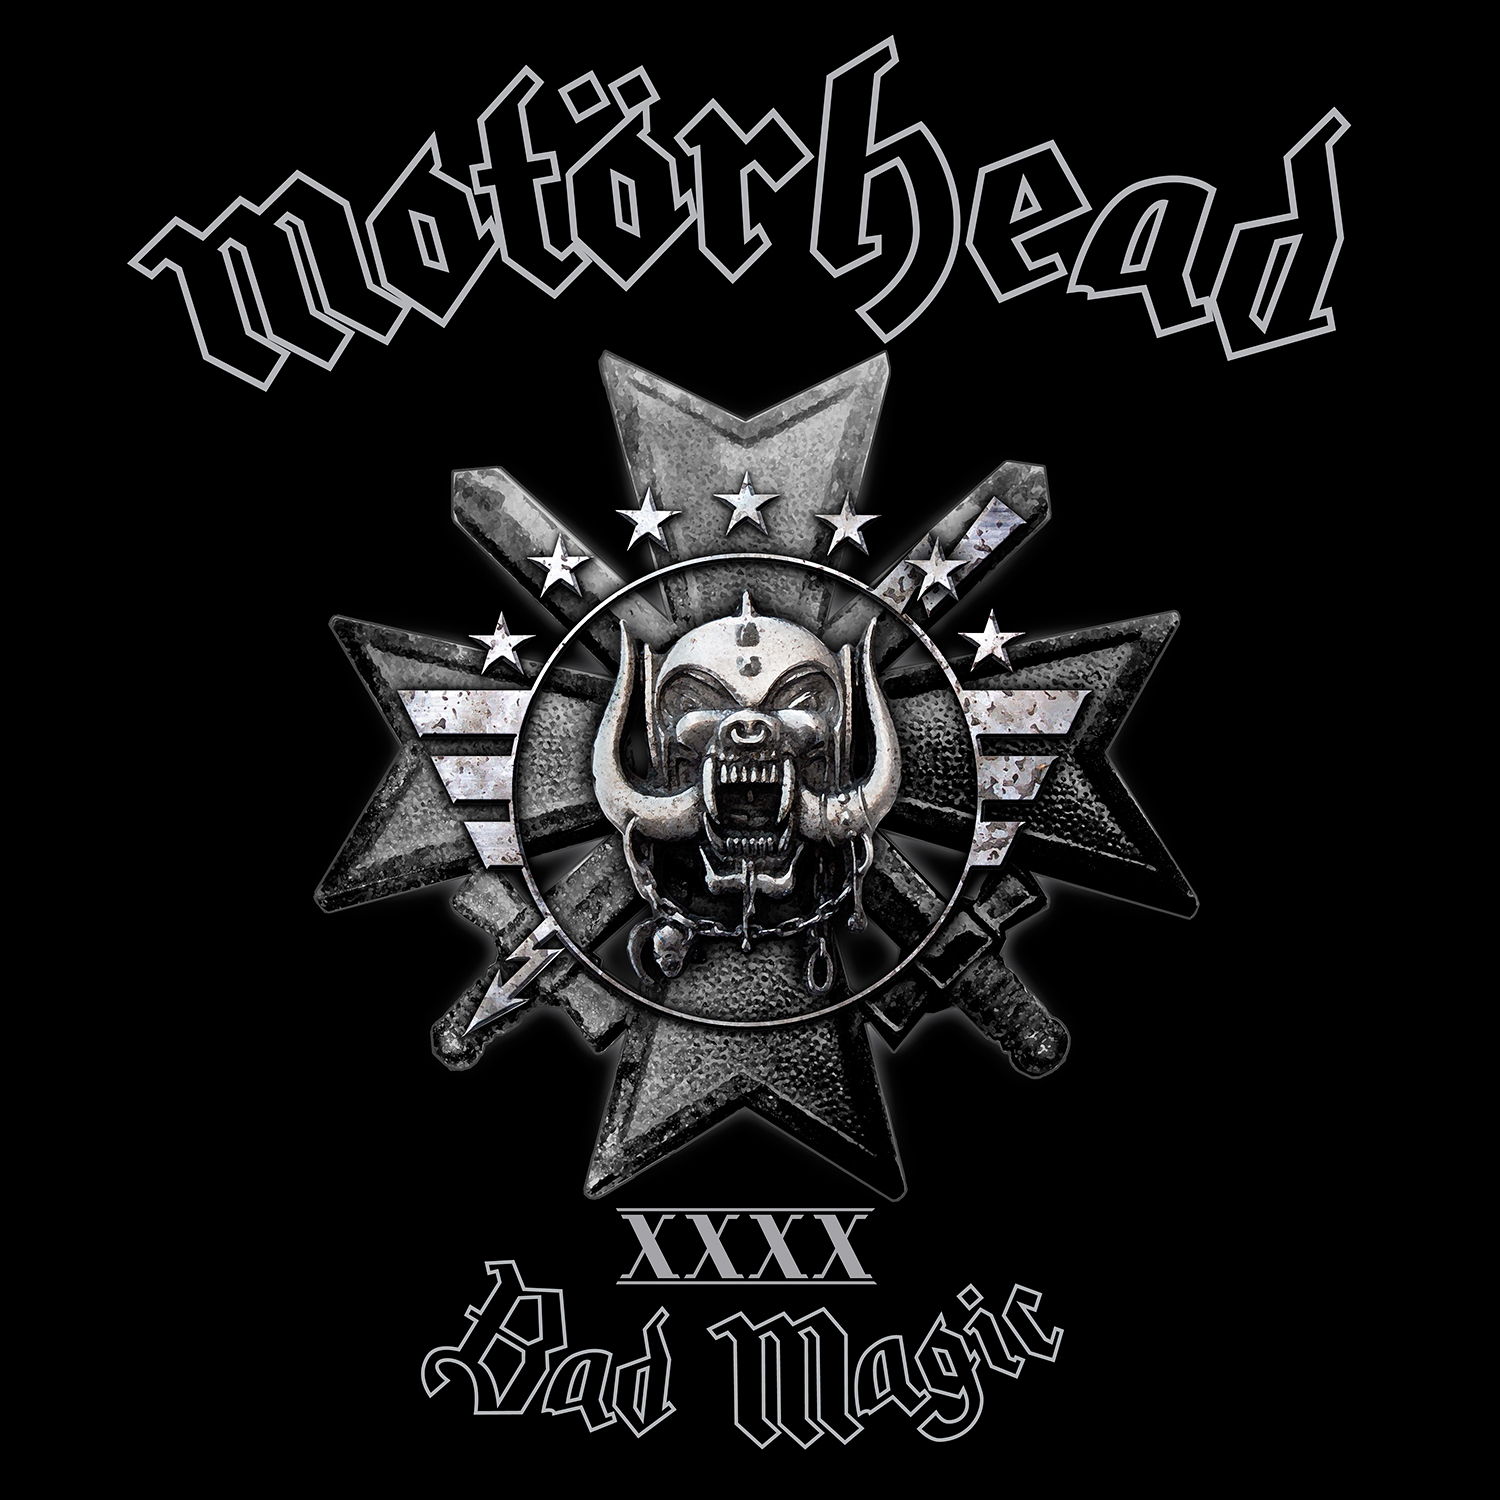 http://cdn.metallus.it/wp-content/uploads/2015/06/Motorhead-bad-magic-2015.jpg